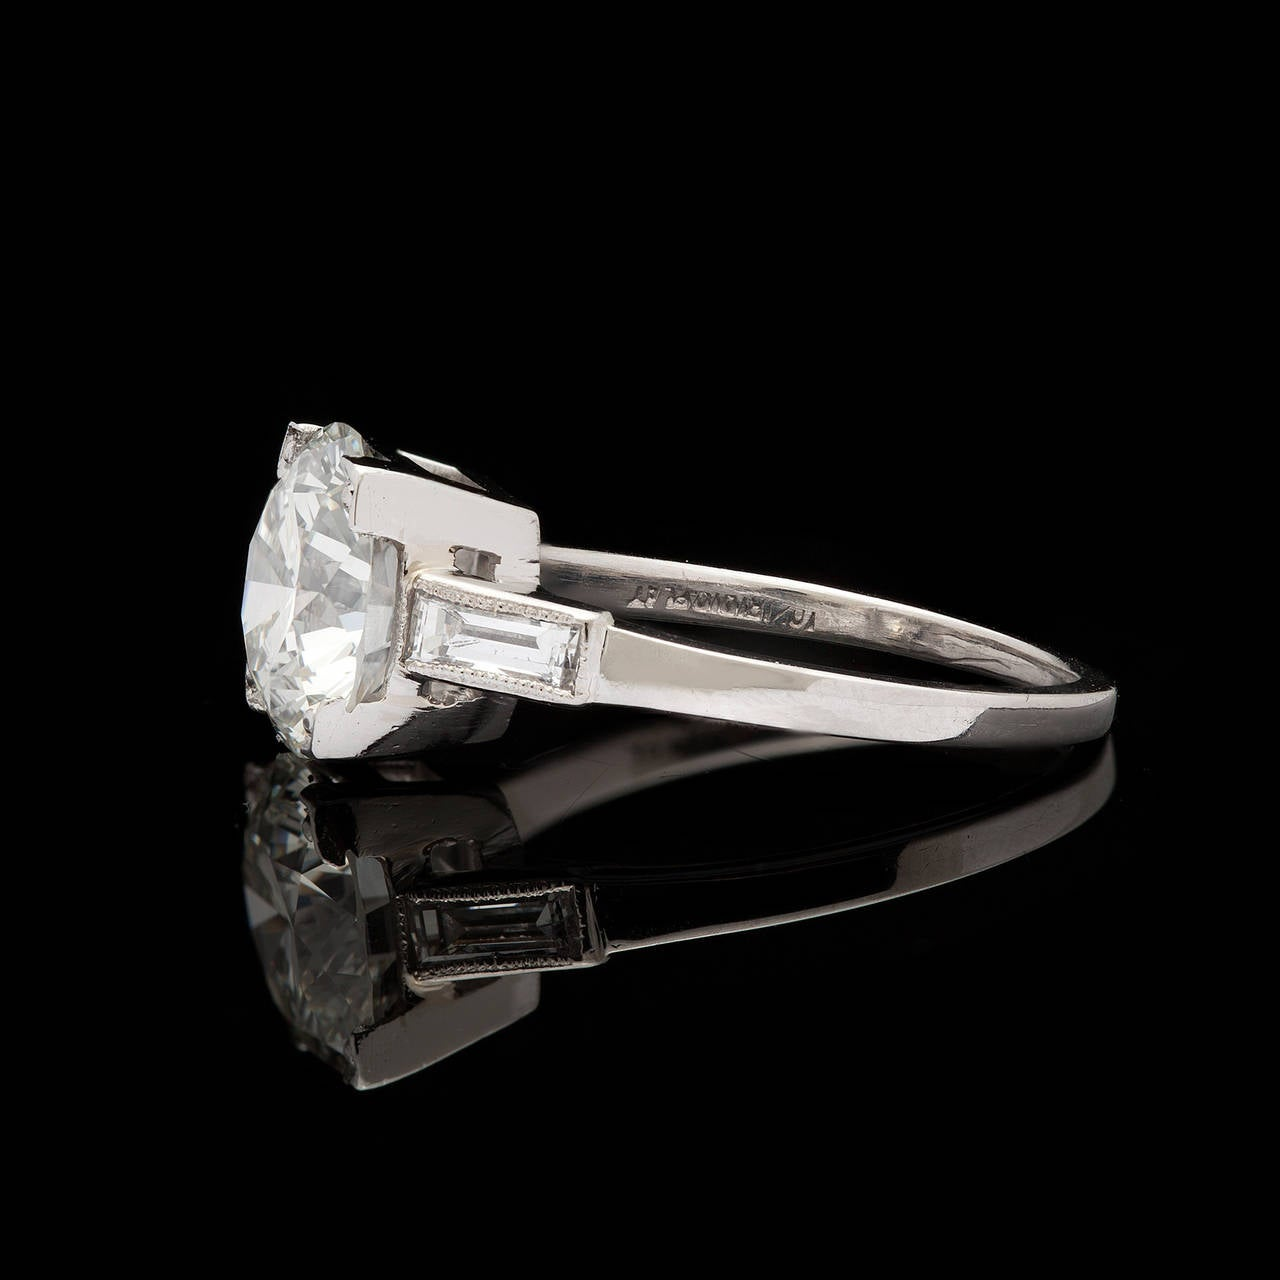 1960s 2 27 Carat GIA Cert Diamond Platinum Engagement Ring at 1stdibs